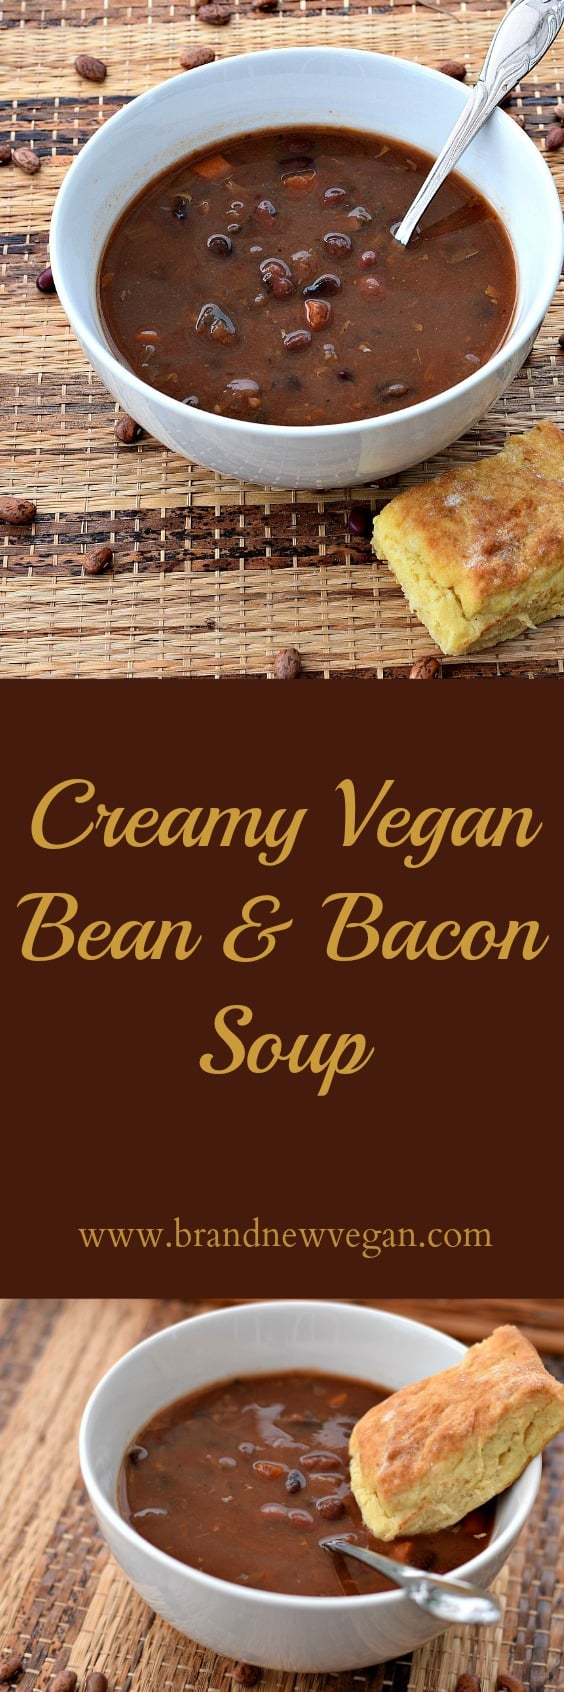 This Vegan Bean and Bacon Soup remins me of those little cans of Campbell's Soup I ate as a kid. With marinated mushrooms substituted for the bacon you almost can't tell the difference!